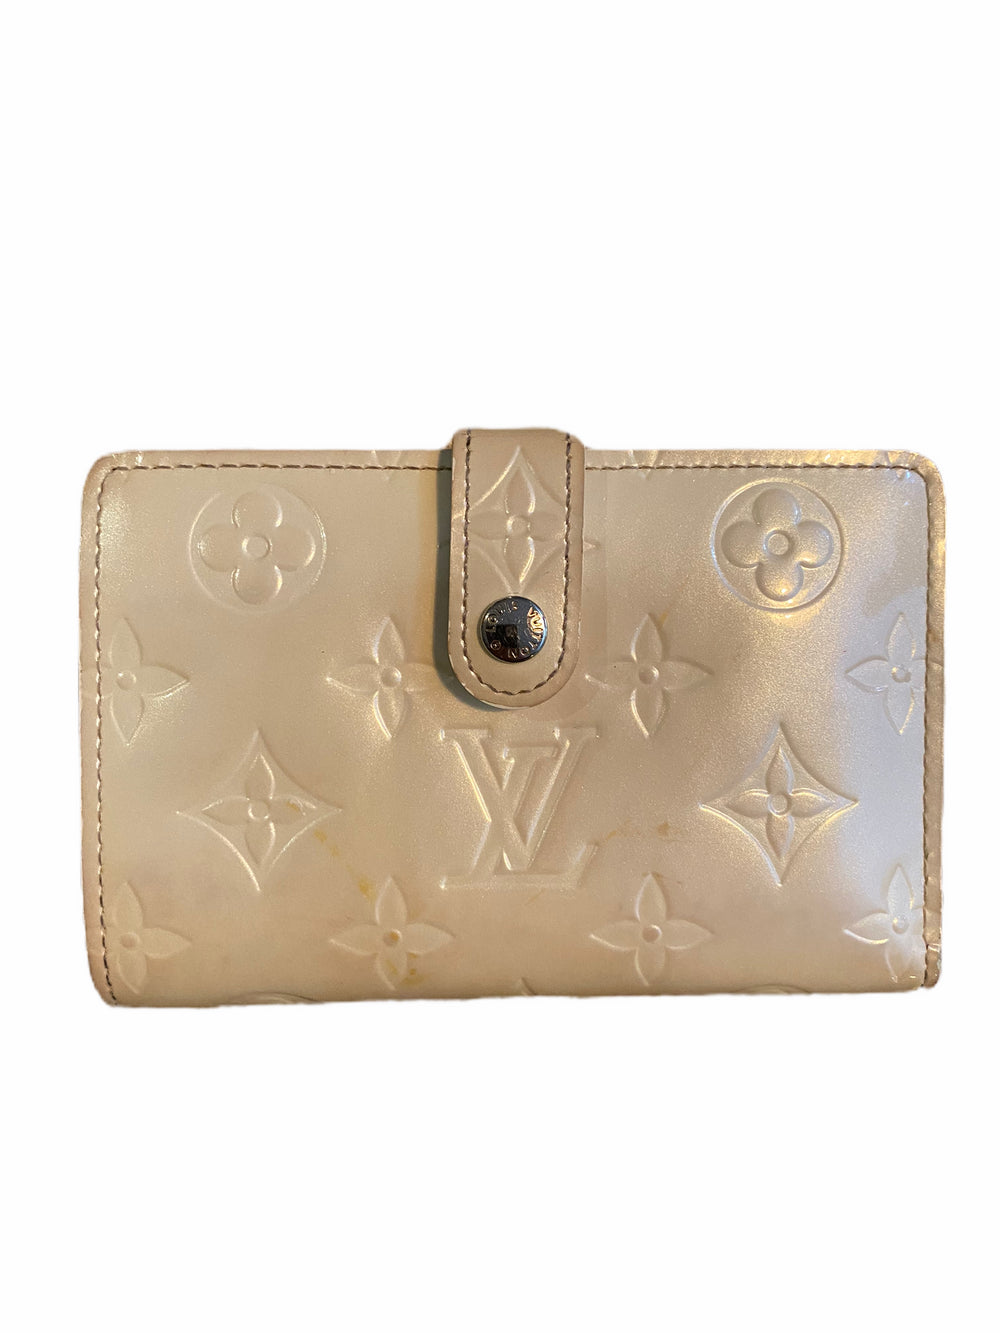 Louis Vuitton Cream Vernis Wallet - As Seen on Instagram